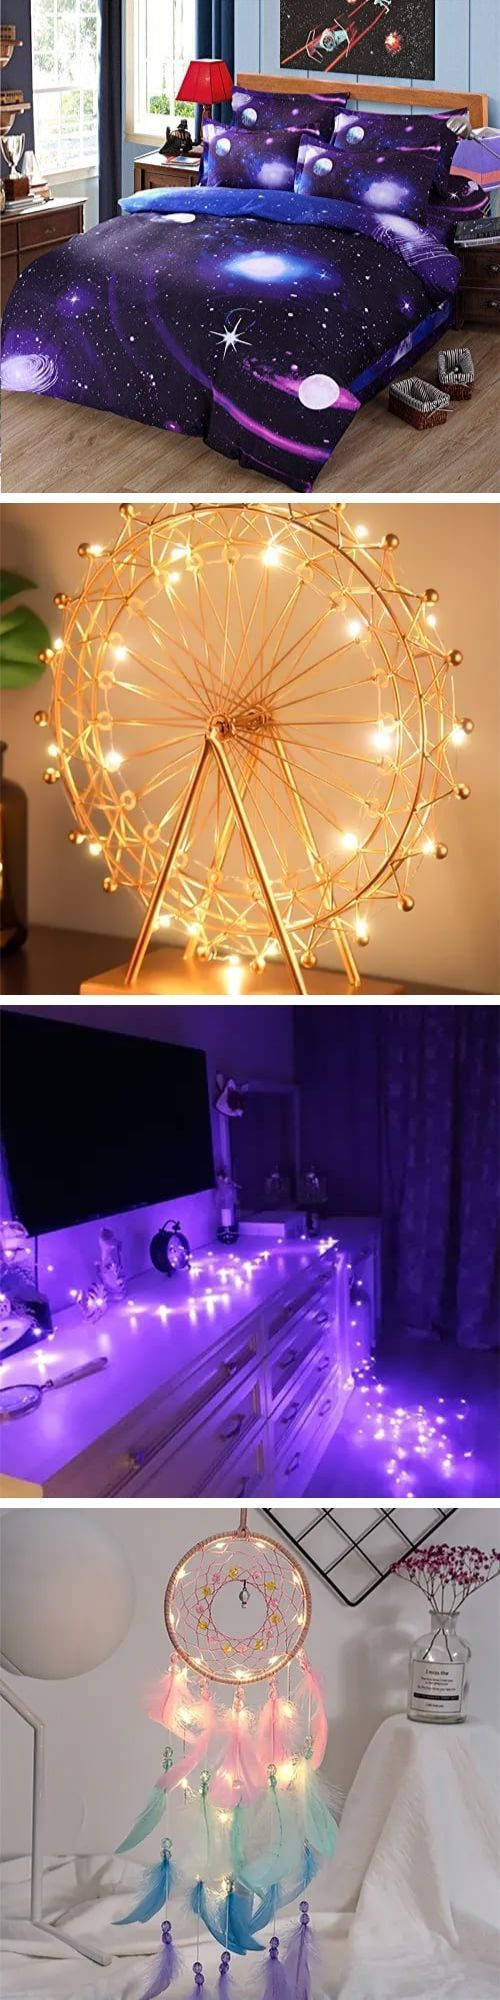 182 Cool Things To Have In Your Room Ultimate Bedroom Accessories List In 2021 Cool Bedroom Accessories Cool Stuff Awesome Bedrooms